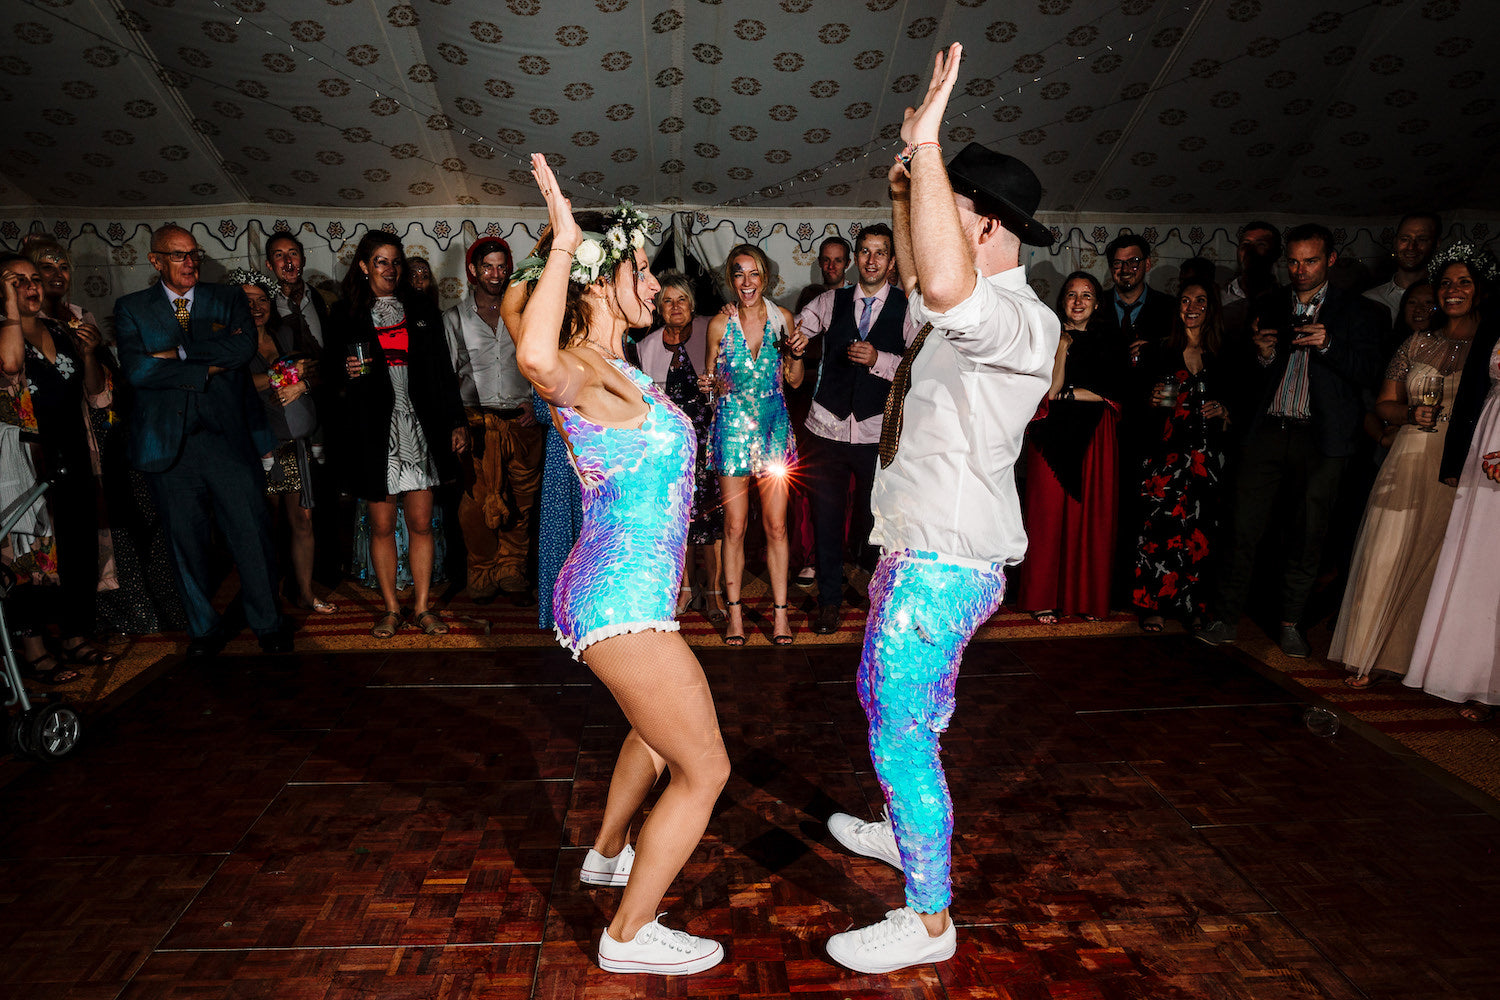 A bride and groom wearing matching white sequin outfits perform their first dance at thier reception.